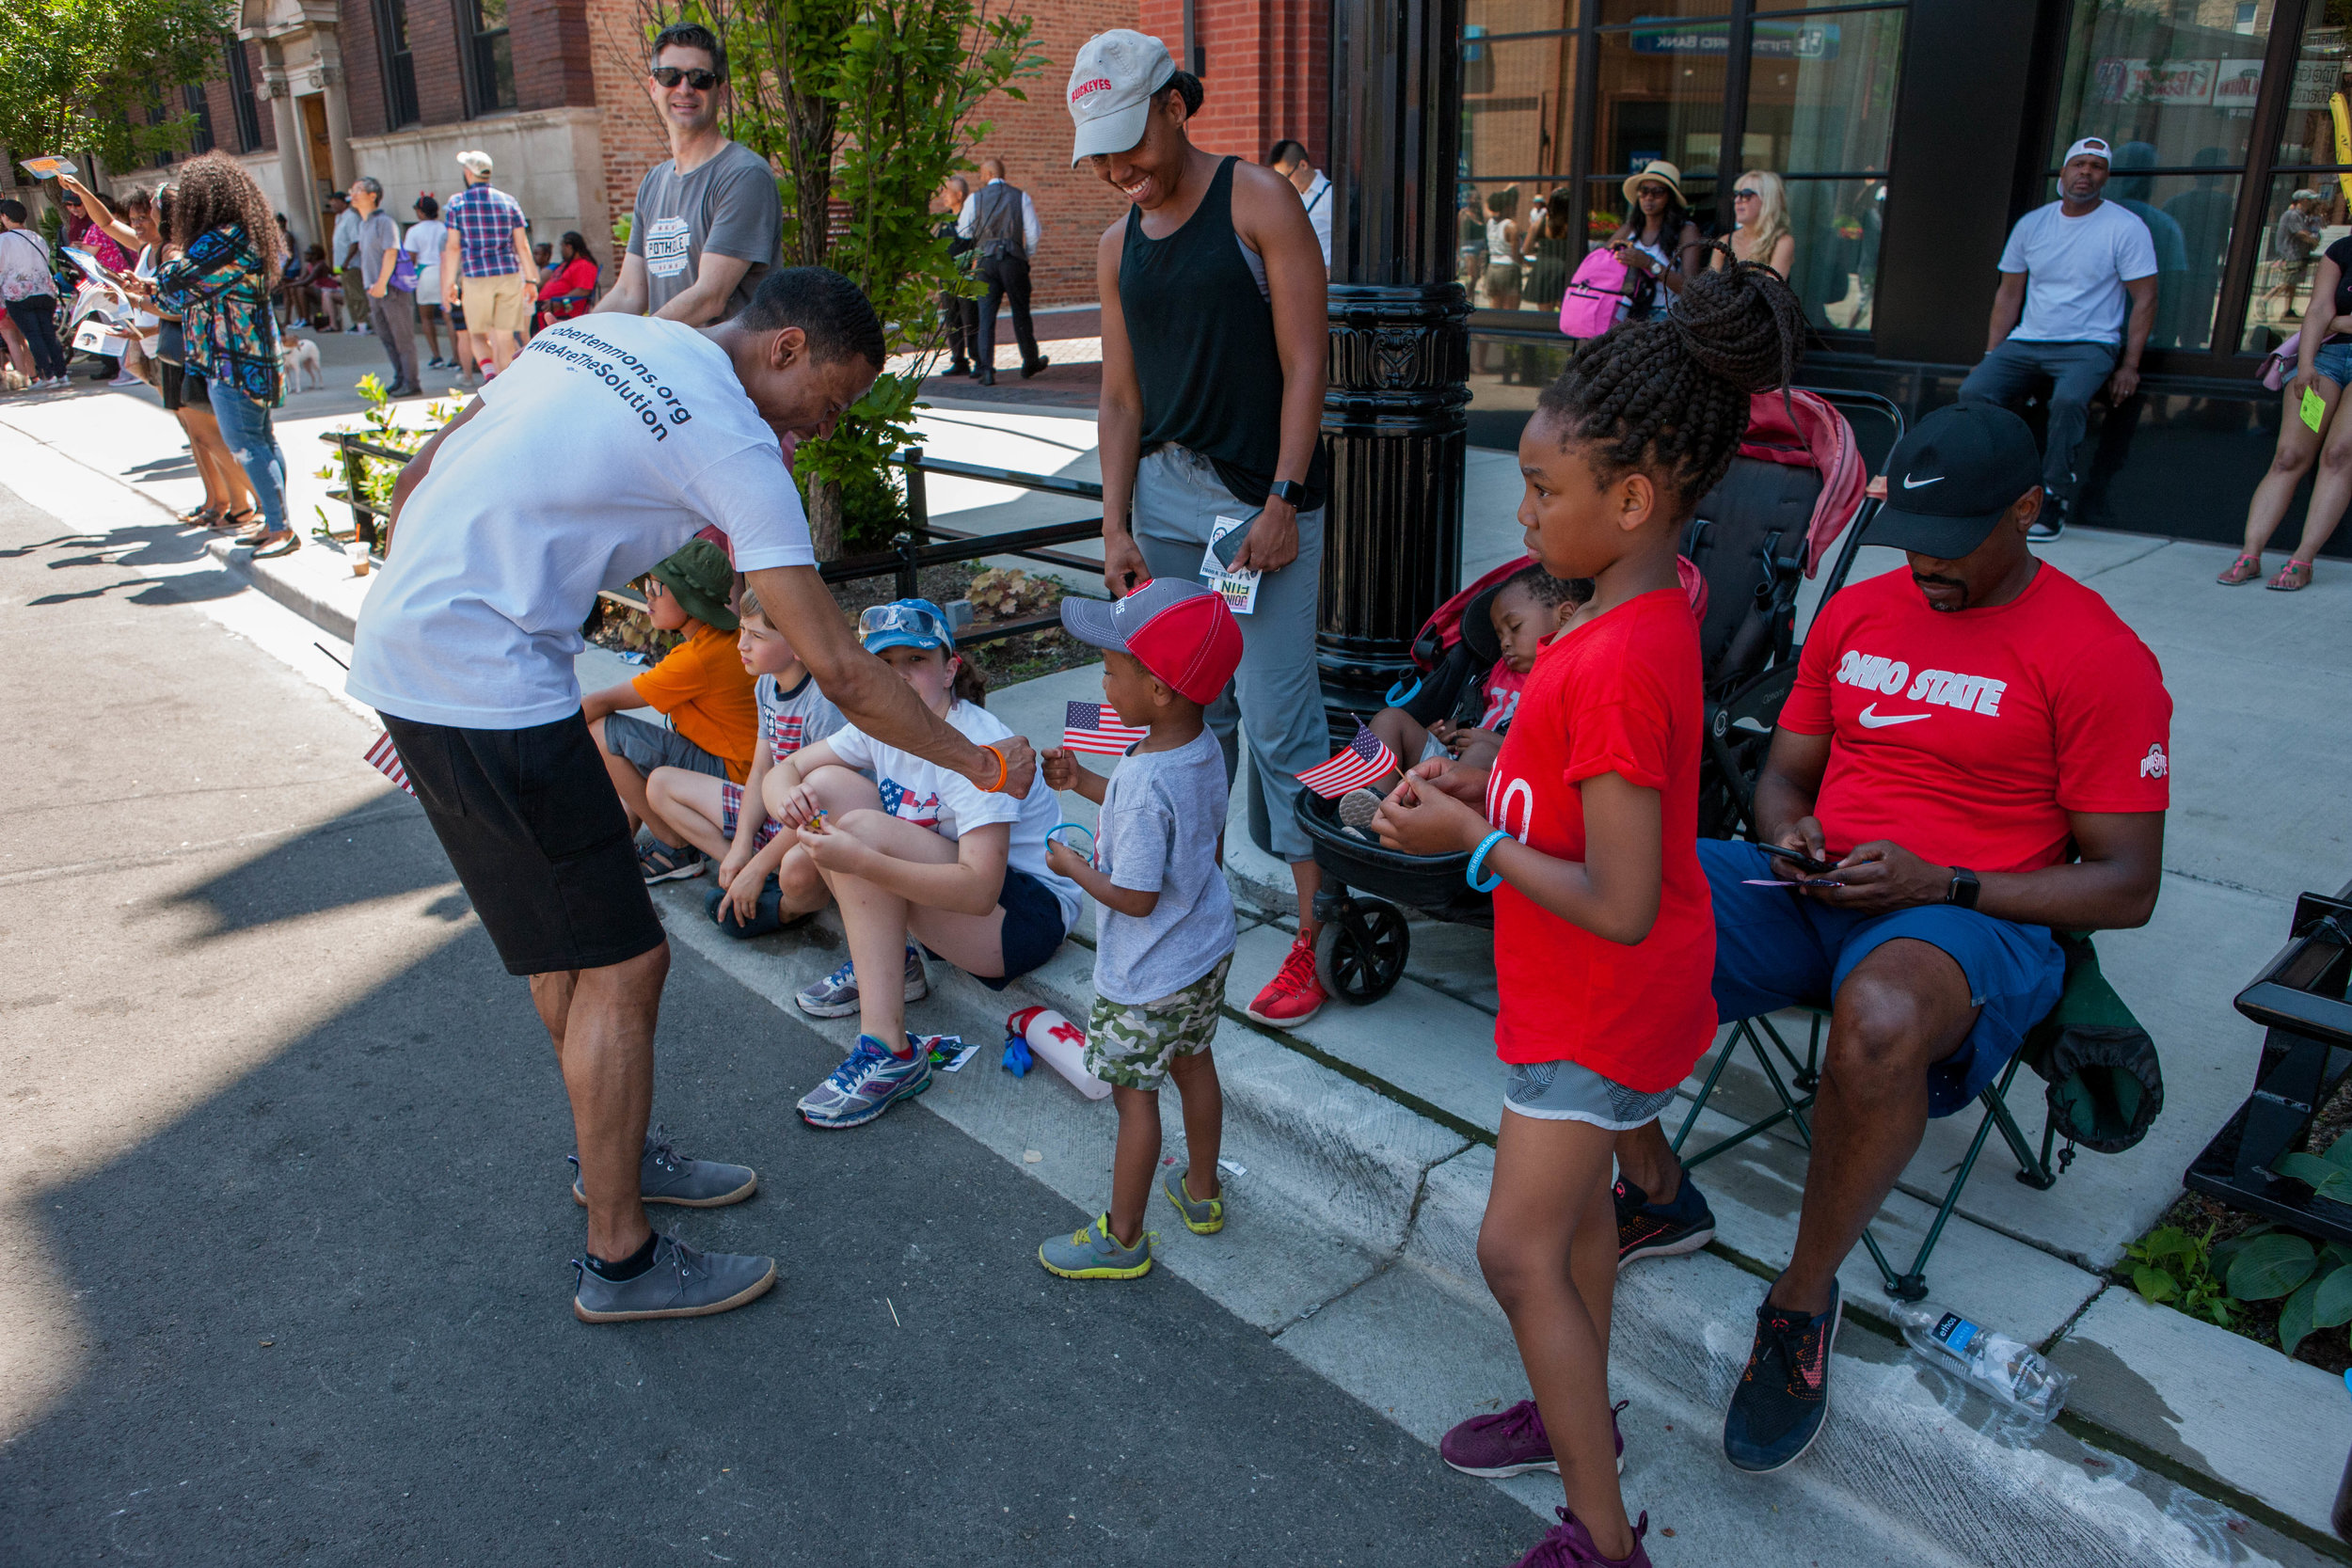 Robert reaches down to shake the hand of a child at the 4th on 53rd Parade.